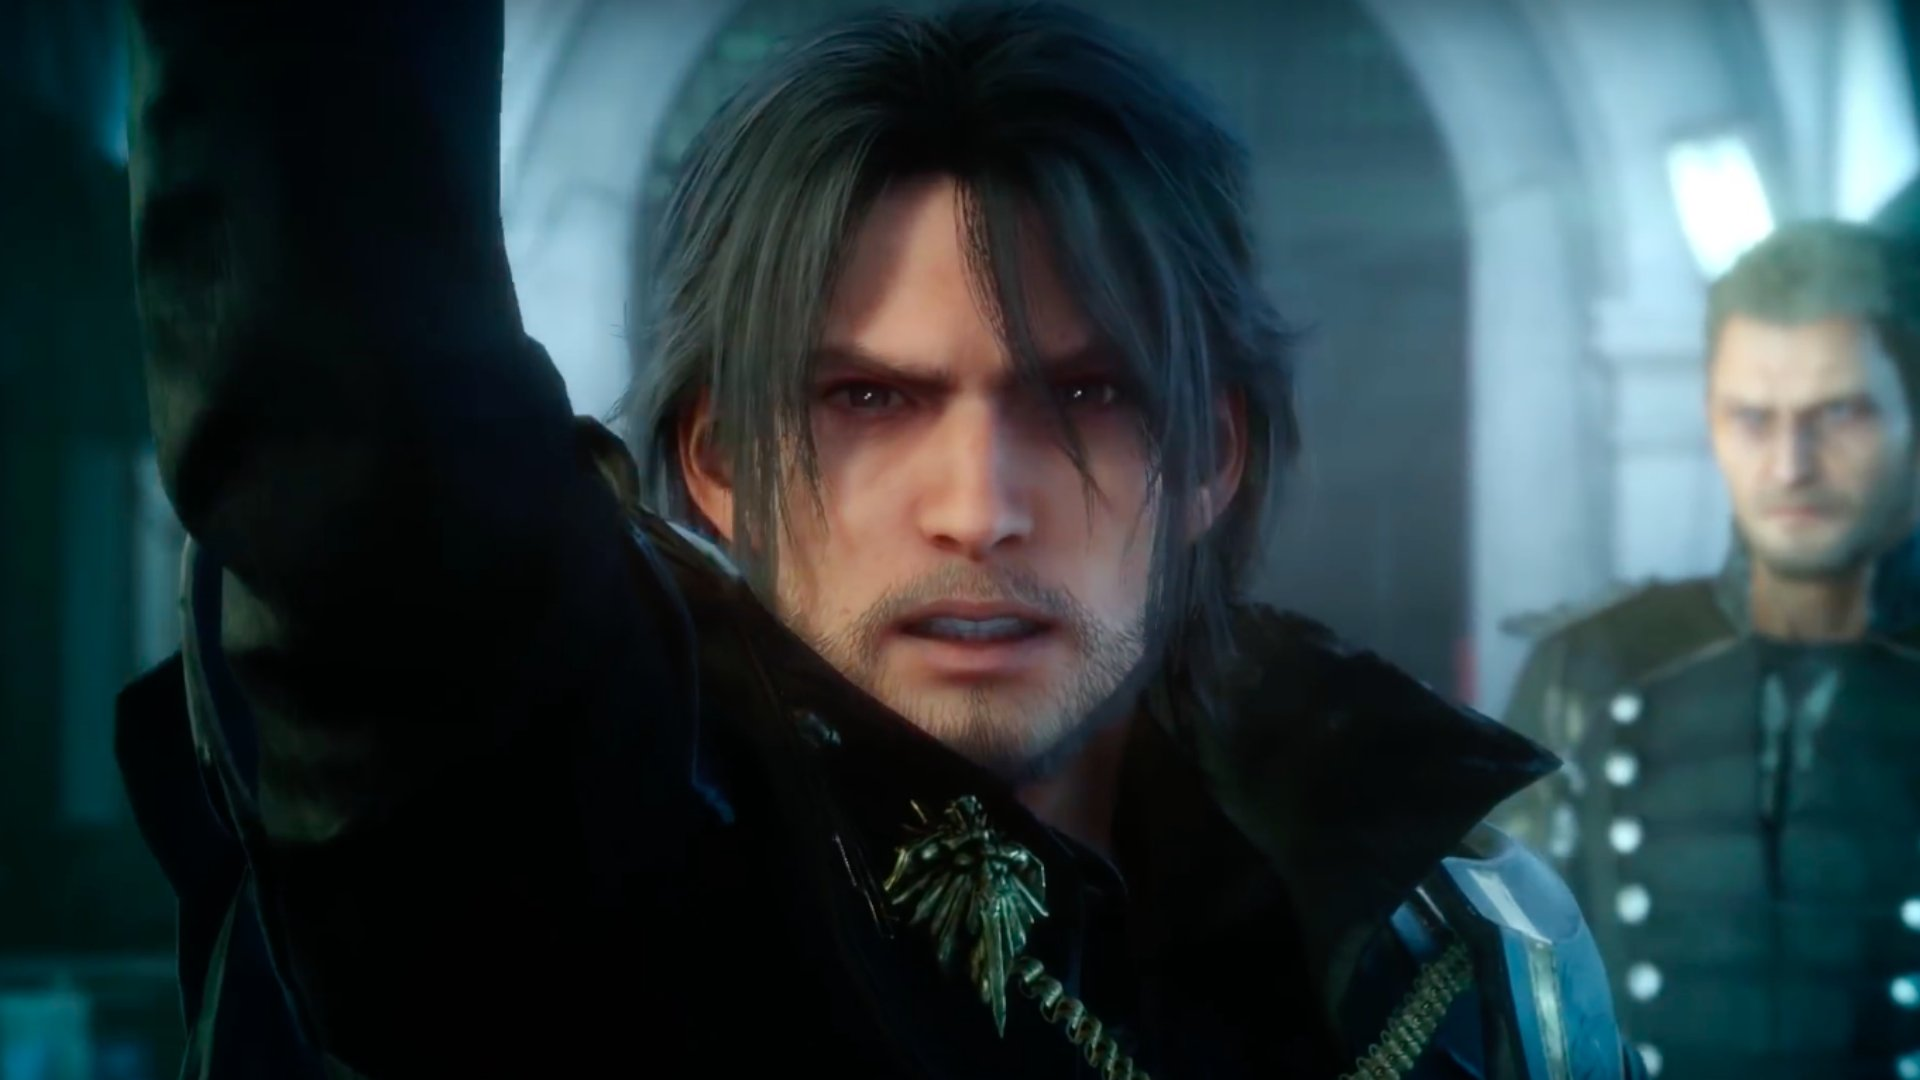 Check out the trailer for #FinalFantasyXVRoyalEdition! Coming March 6th! https://t.co/RnBiRxzdZ6